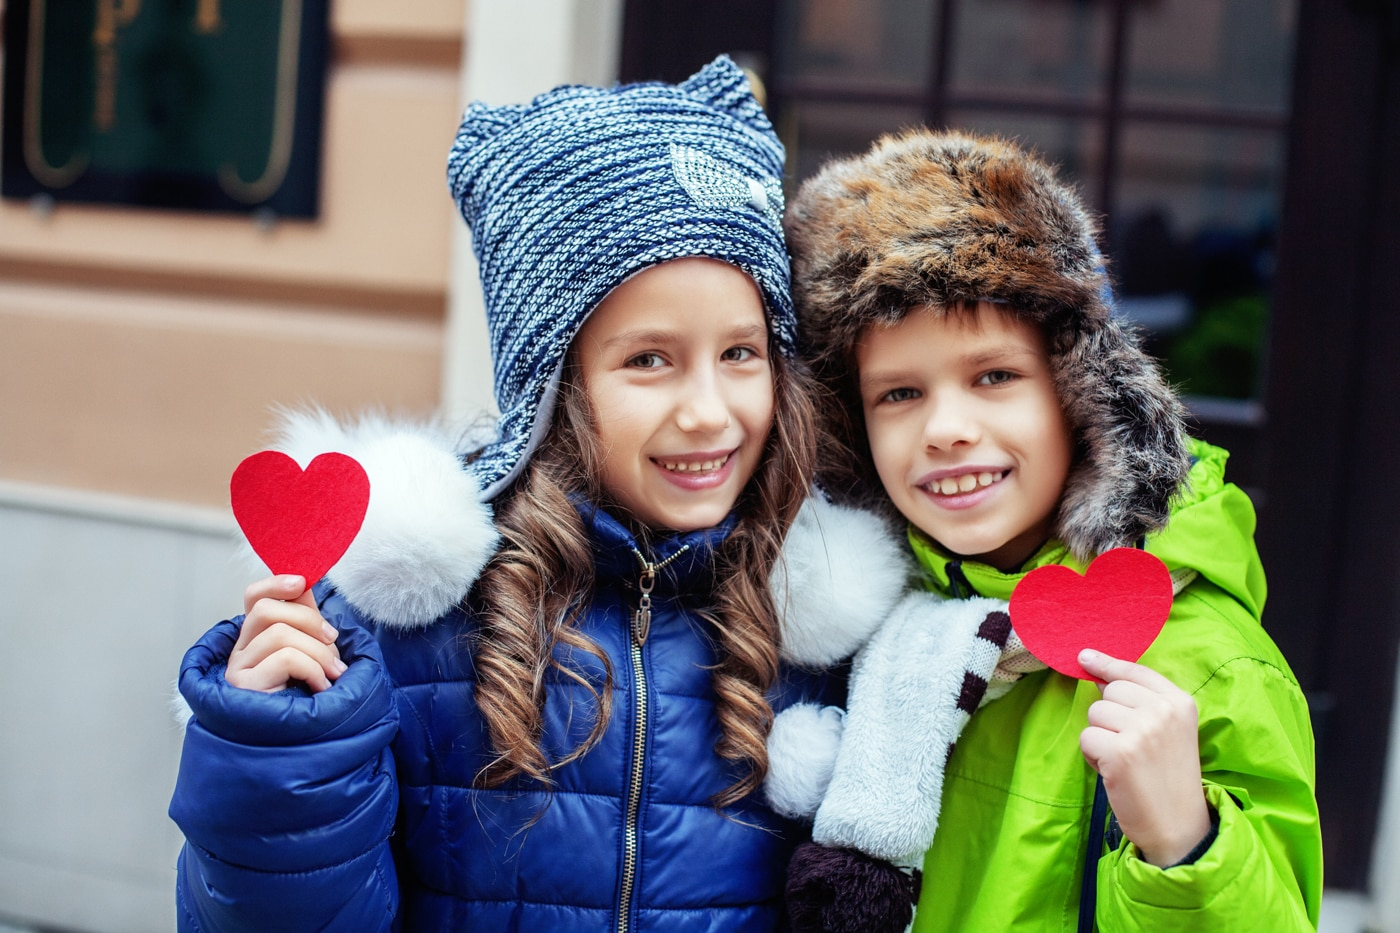 Two children smiling and holding paper hearts (© Shutterstock)